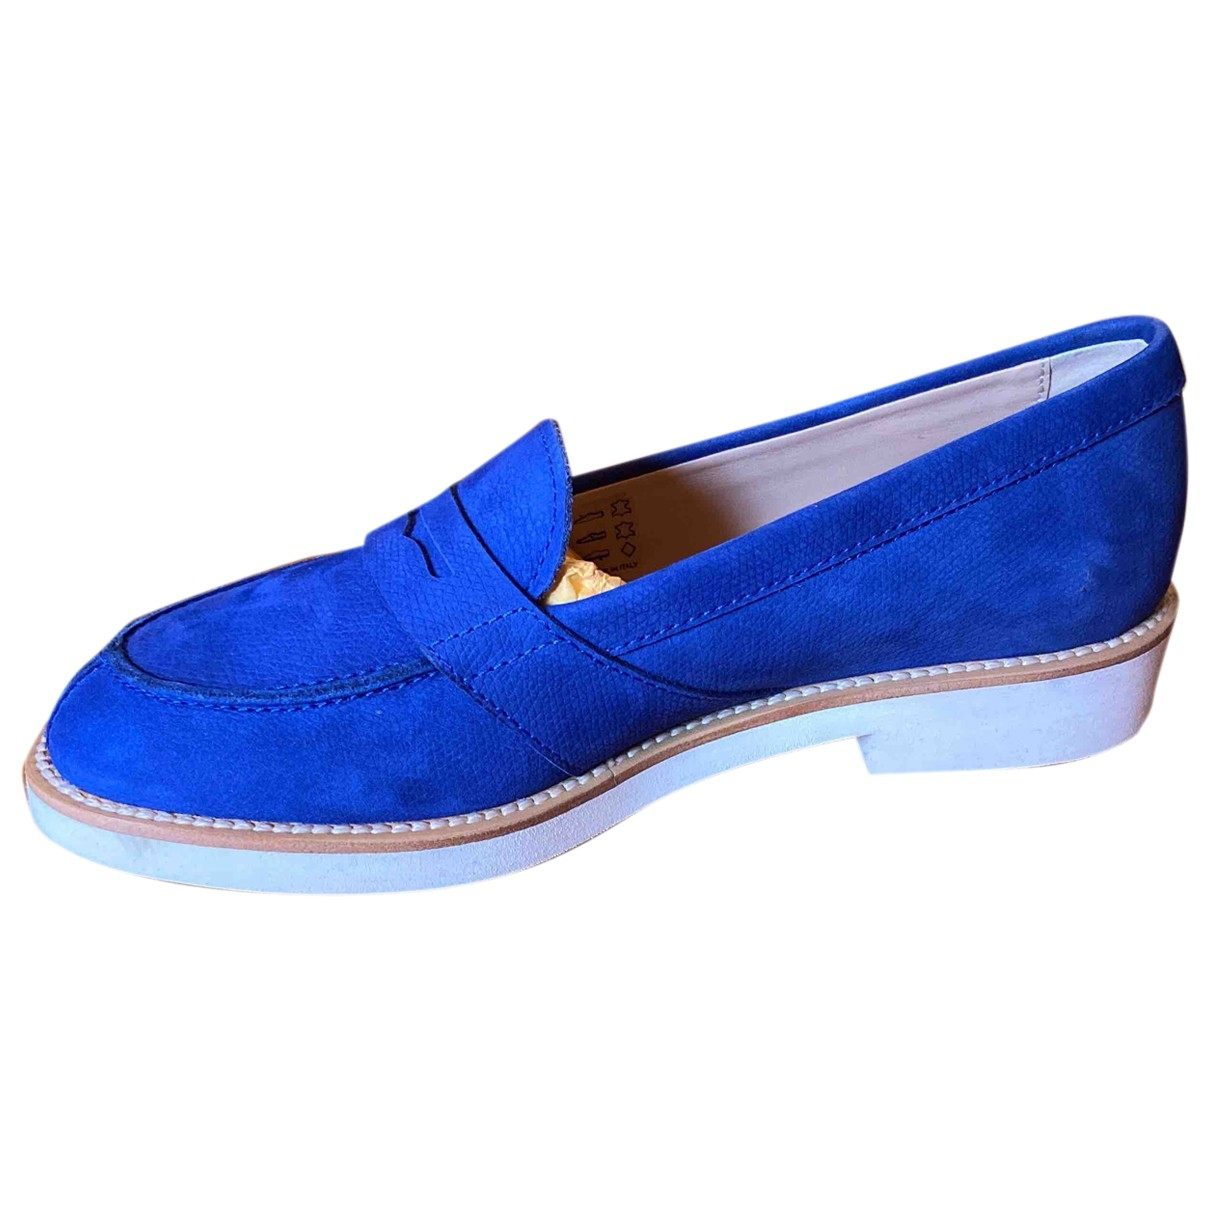 Tods \N Mokassins in  Blau Leder